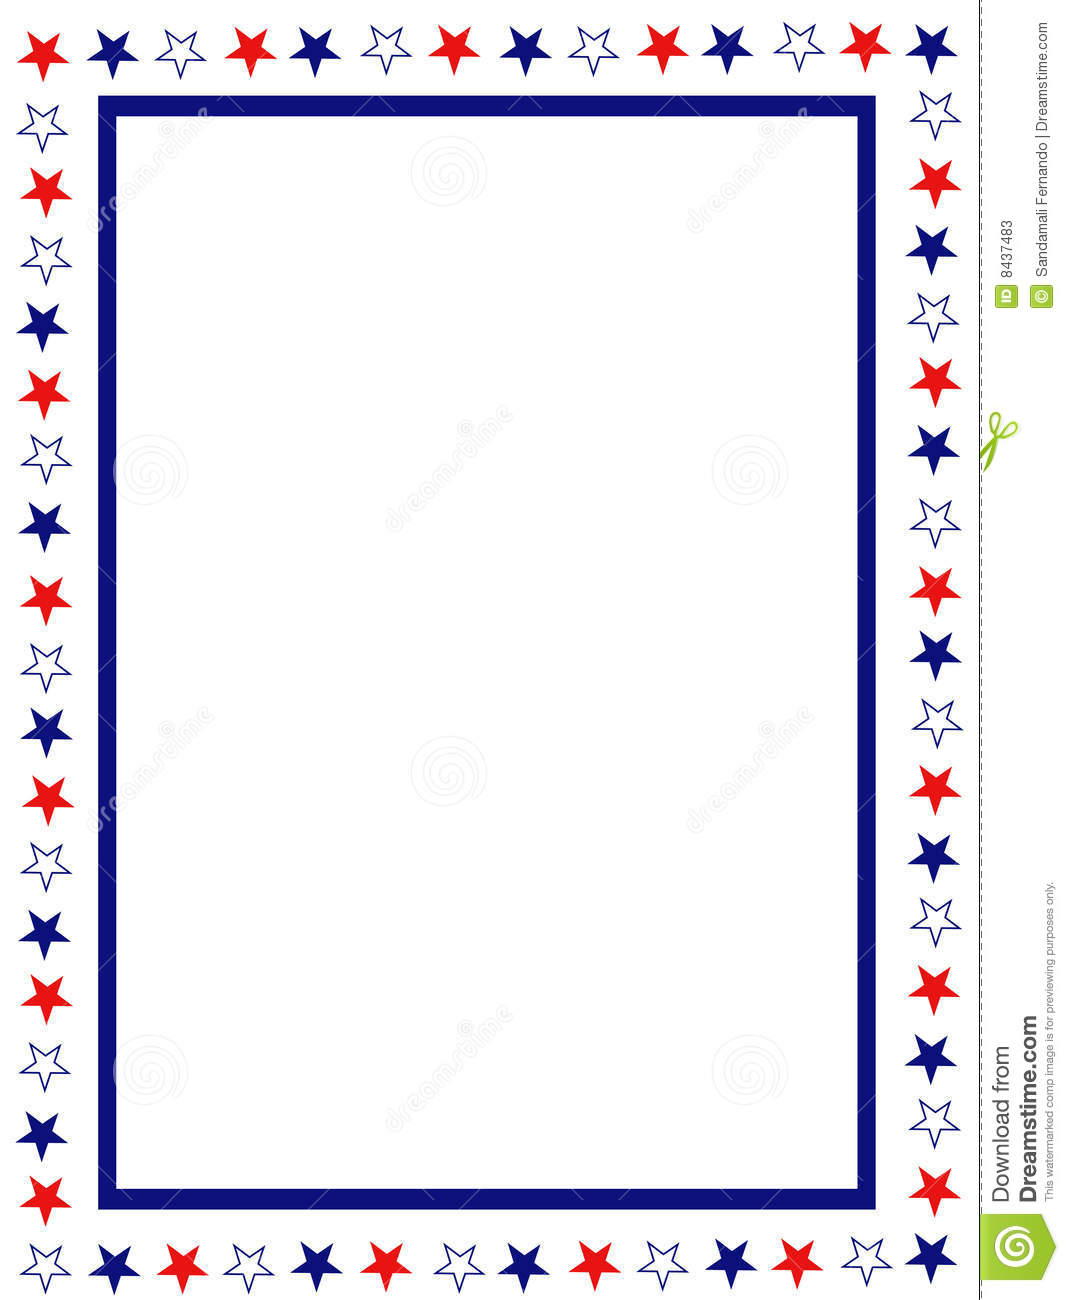 free patriotic page borders blue and red patriotic stars stripes page border frame design